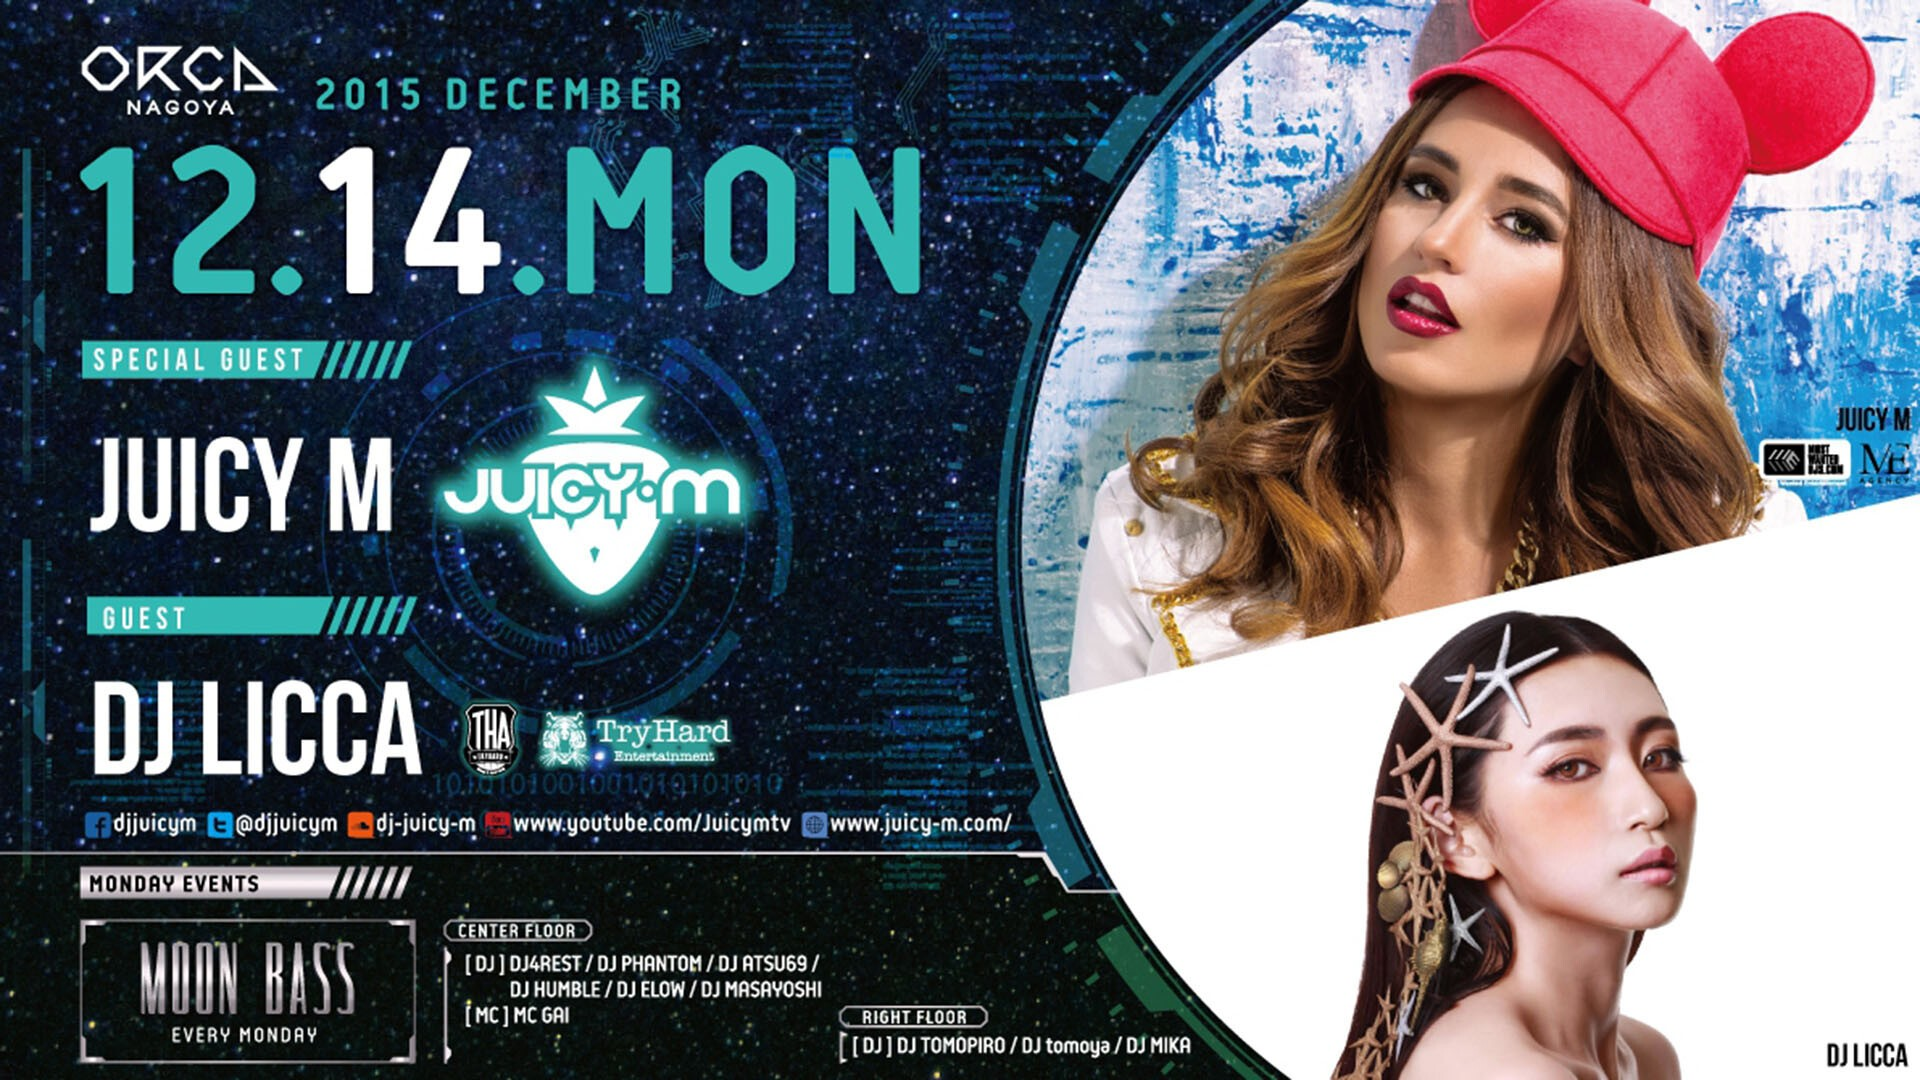 Iflyer Moon Bass Special Guest Juicy M Dj Licca At Orca